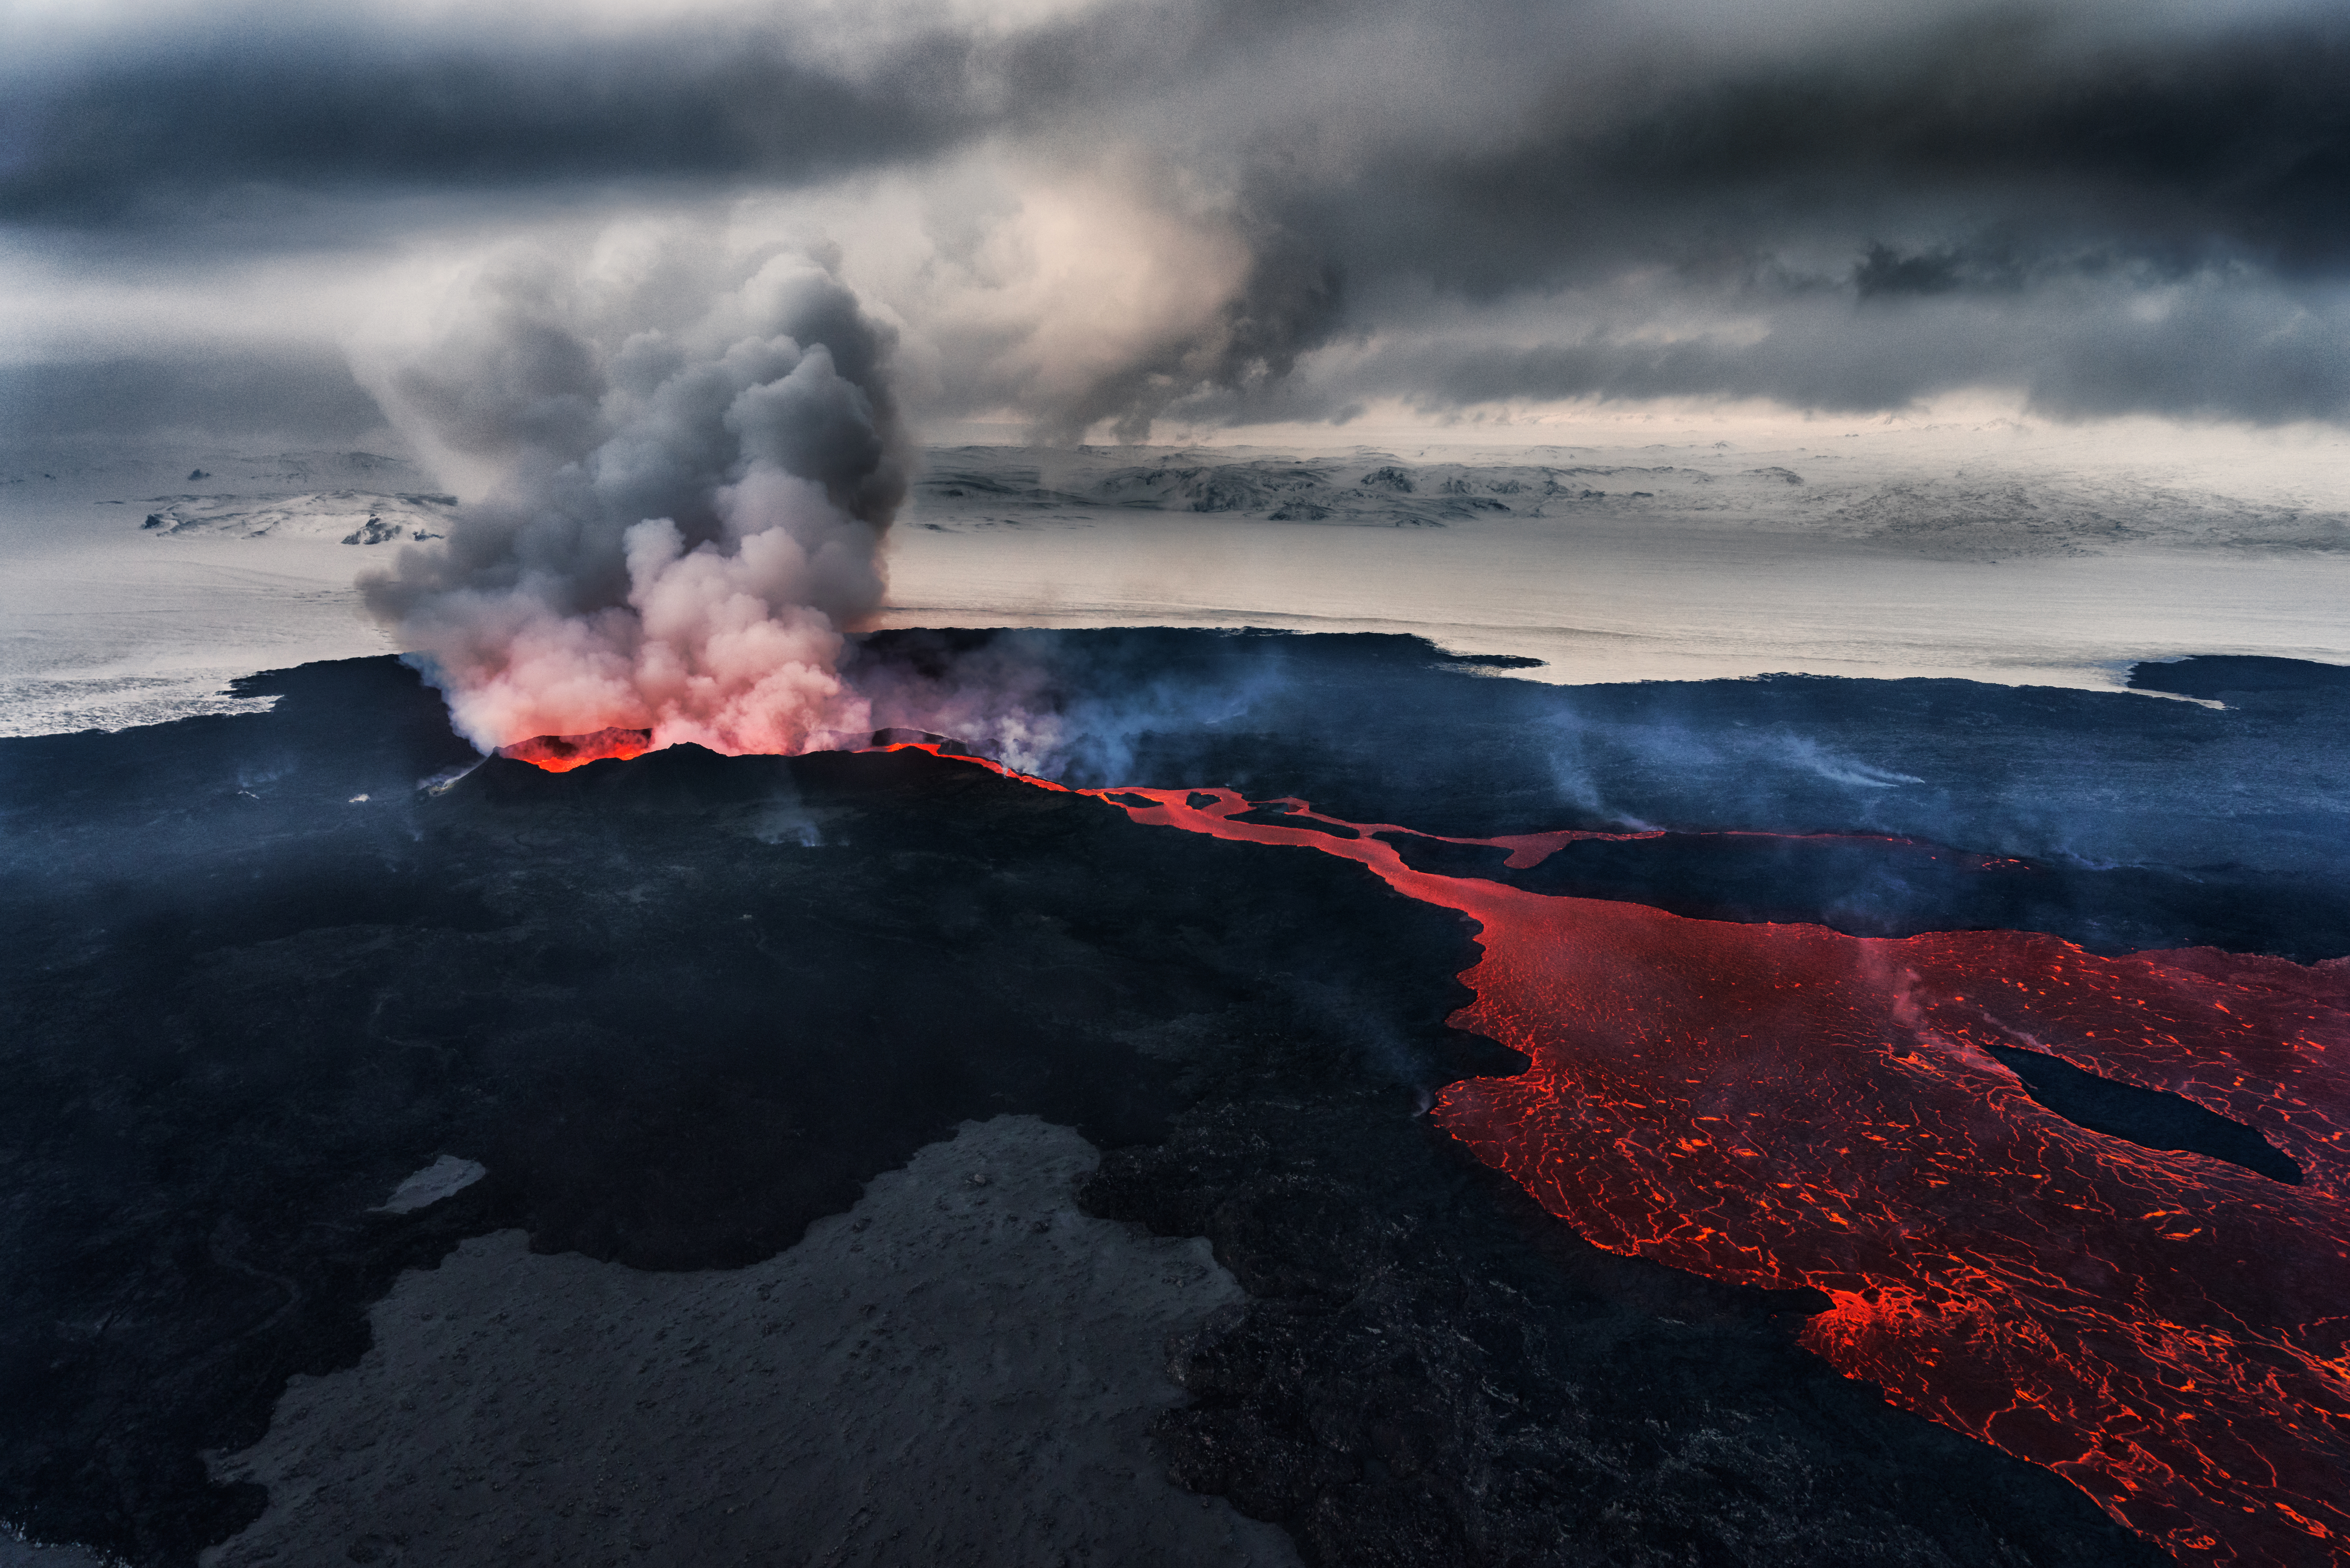 An aerial photo of the Holahraun fissure eruption, with a volcanic gas plume issuing from the vent and a lava flow extending from a mini volcanic cone across the sandur.